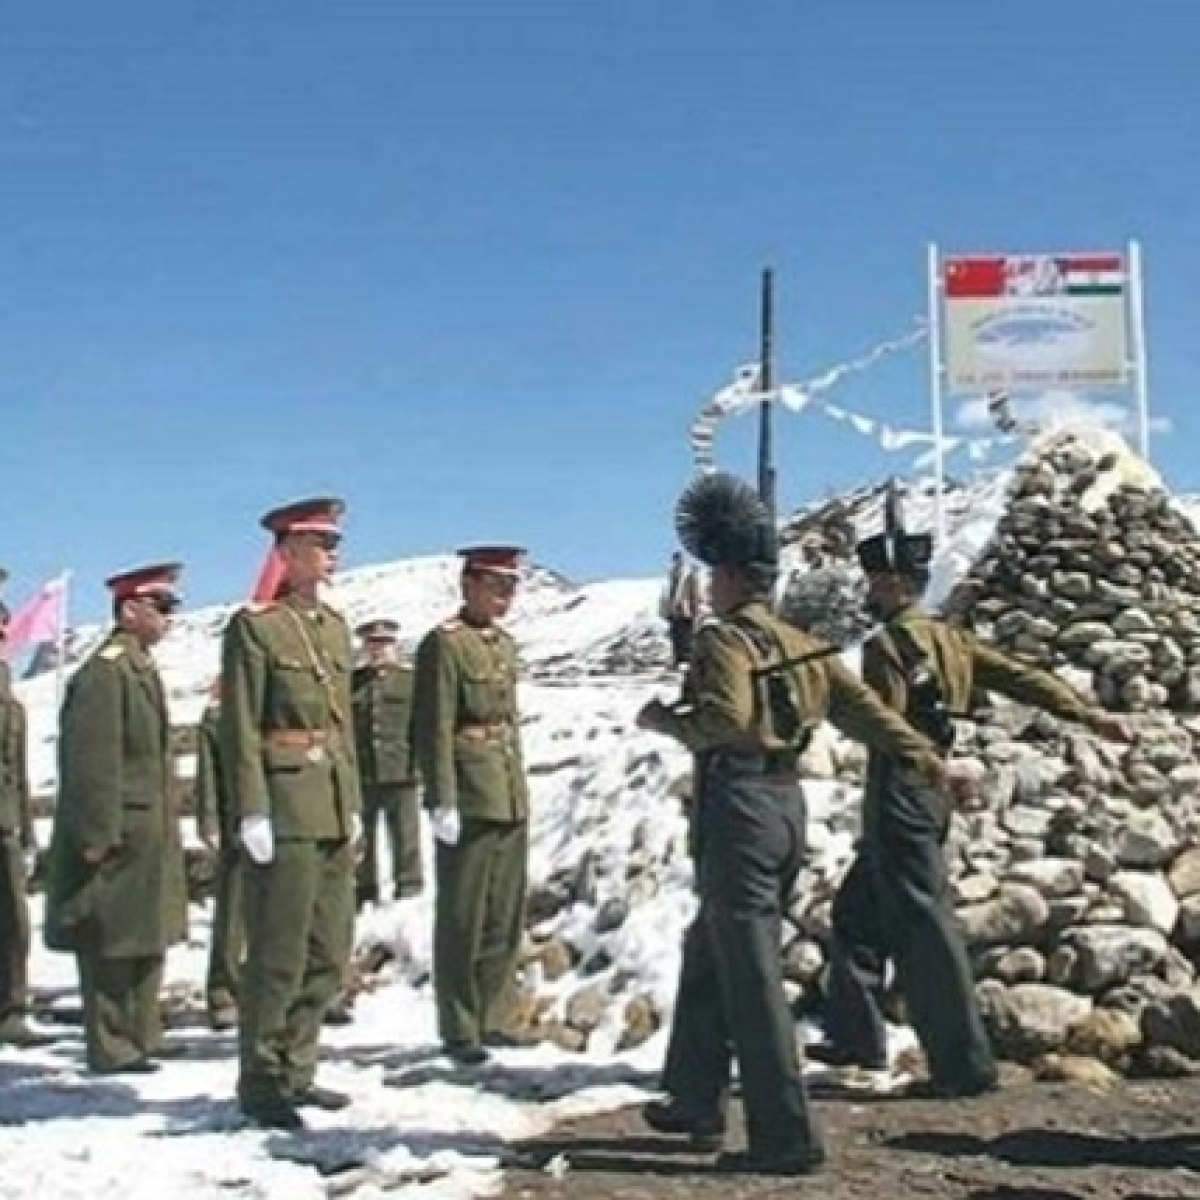 30,000 Indian troops in eyeball-to-eyeball confrontation with Chinese army in Ladakh